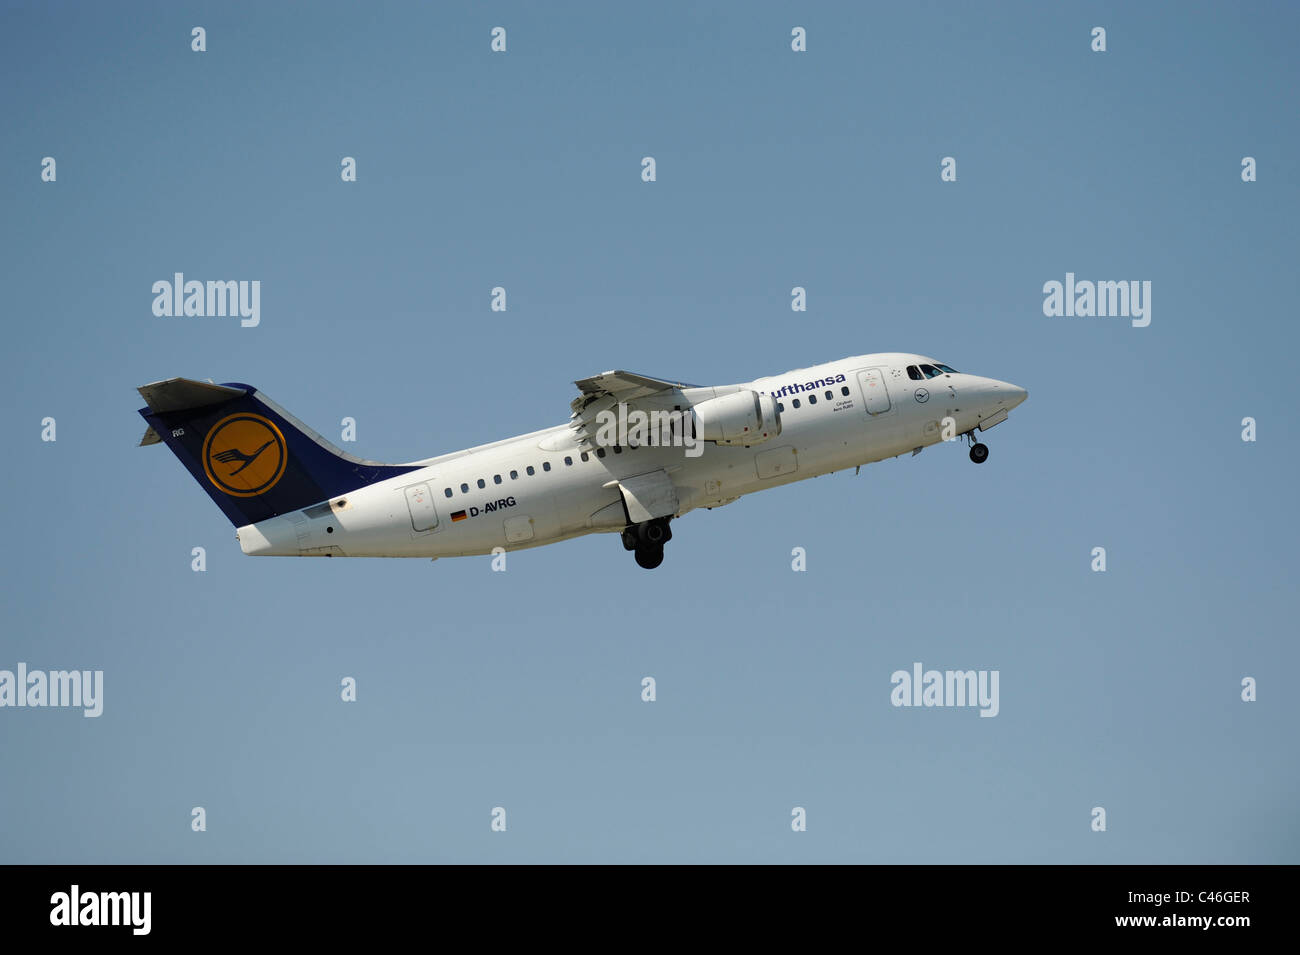 airplane Avro RJ85 of german airline Lufthansa at take-off from airport Munich in Germany - Stock Image